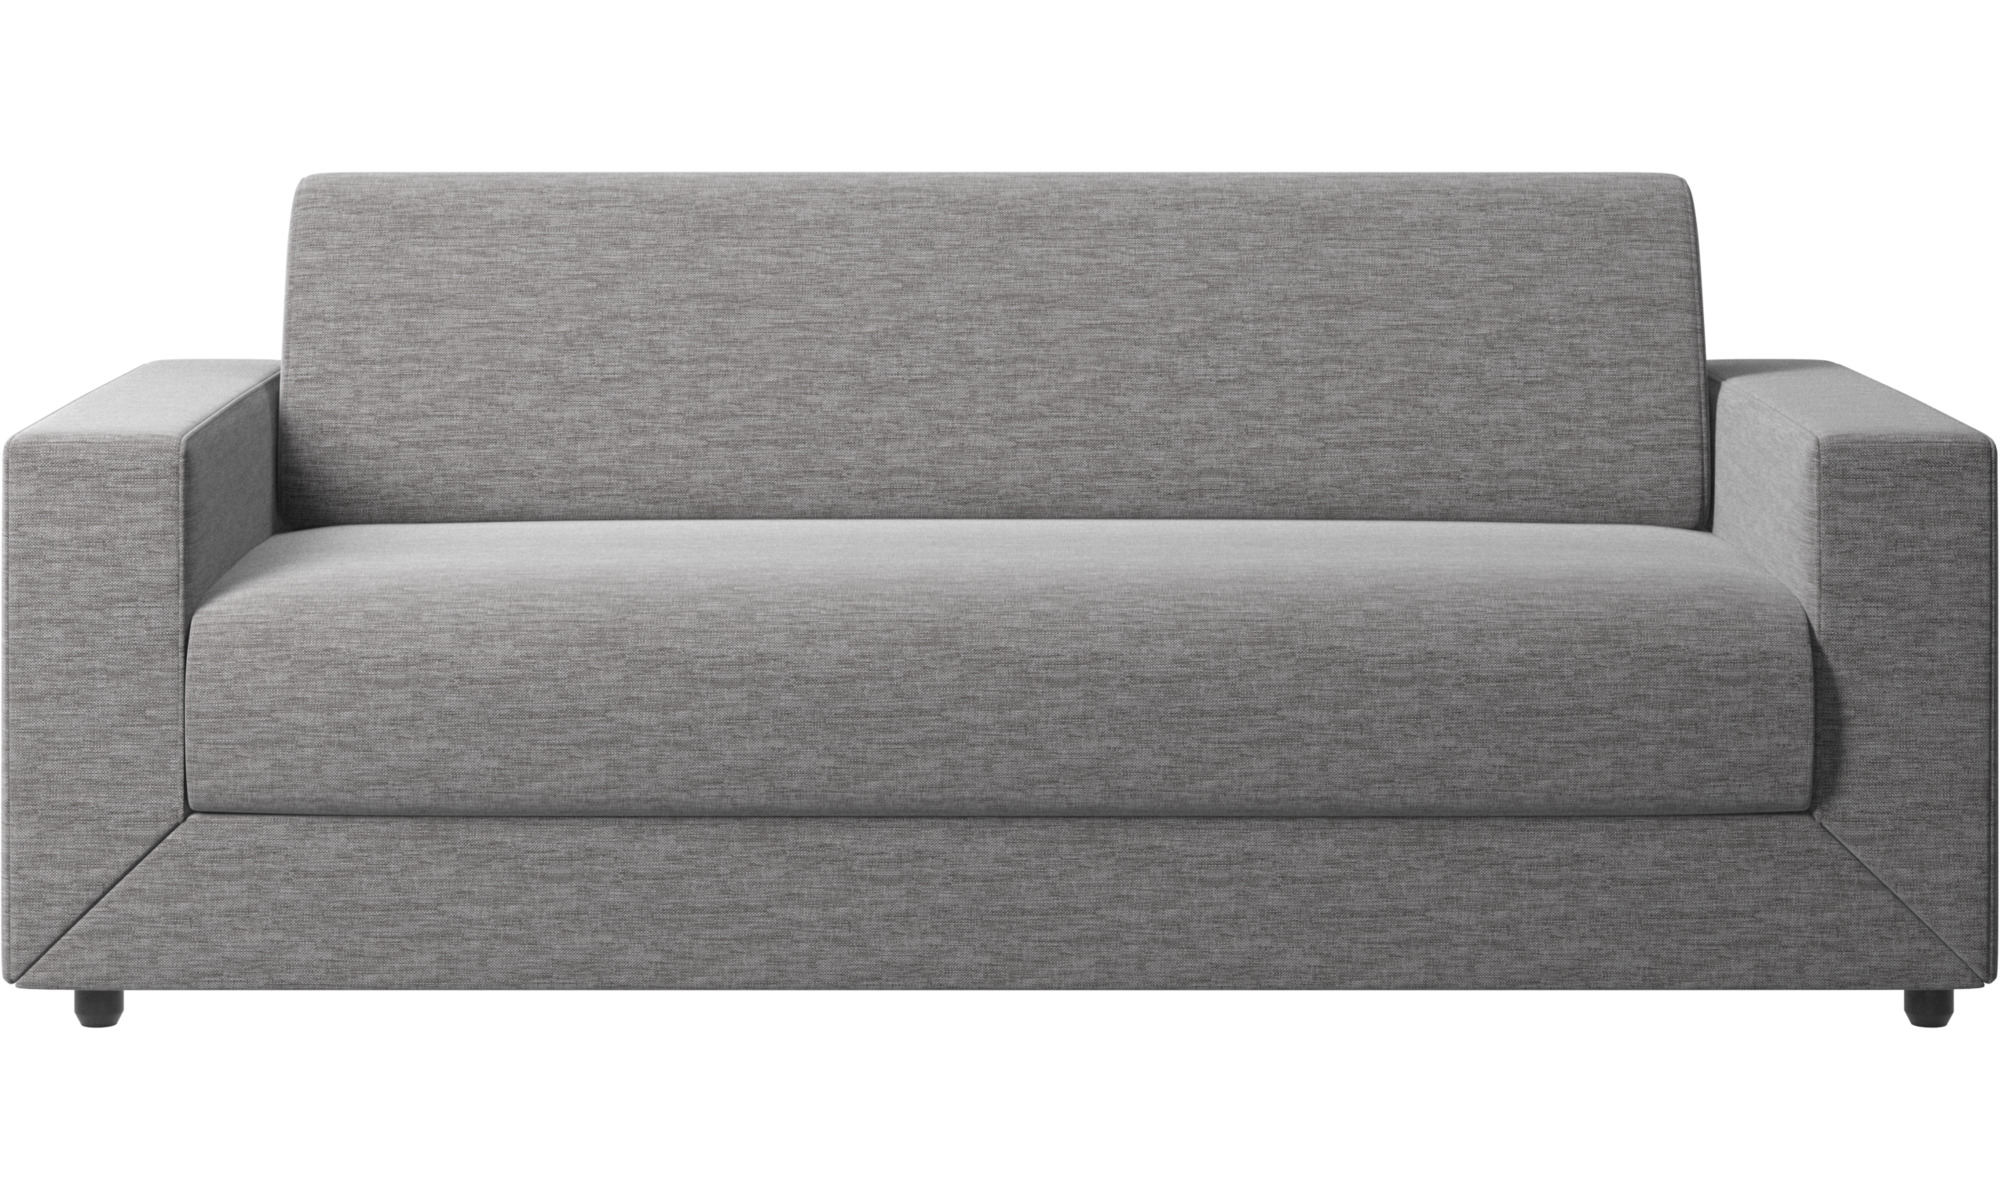 Sofa Beds Stockholm Bed Grey Fabric